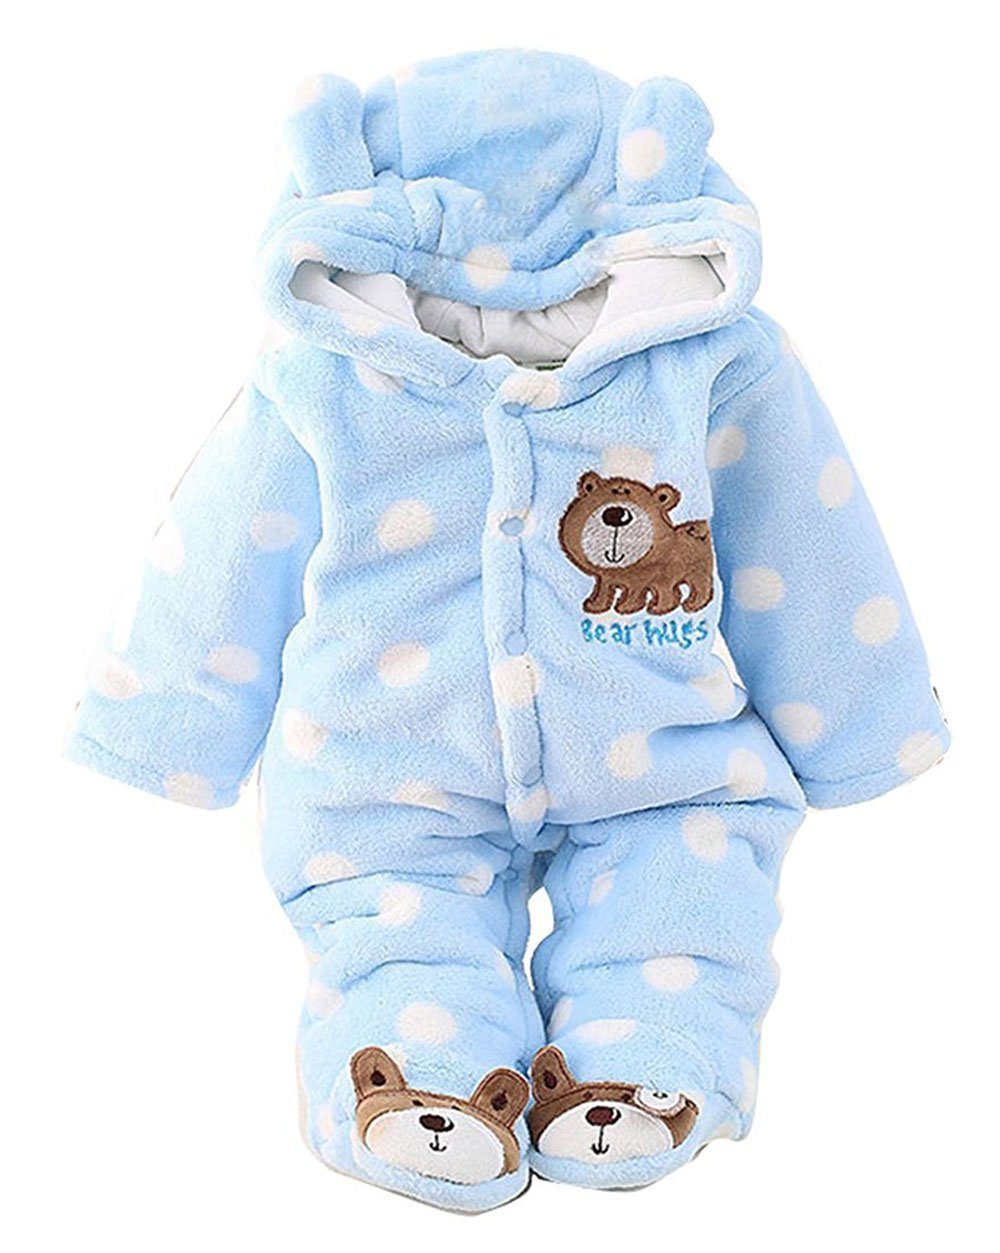 C&M Baby Jumpsuit Outfit Hoody Coat Winter Infant Rompers Toddler Clothing Bodysuit